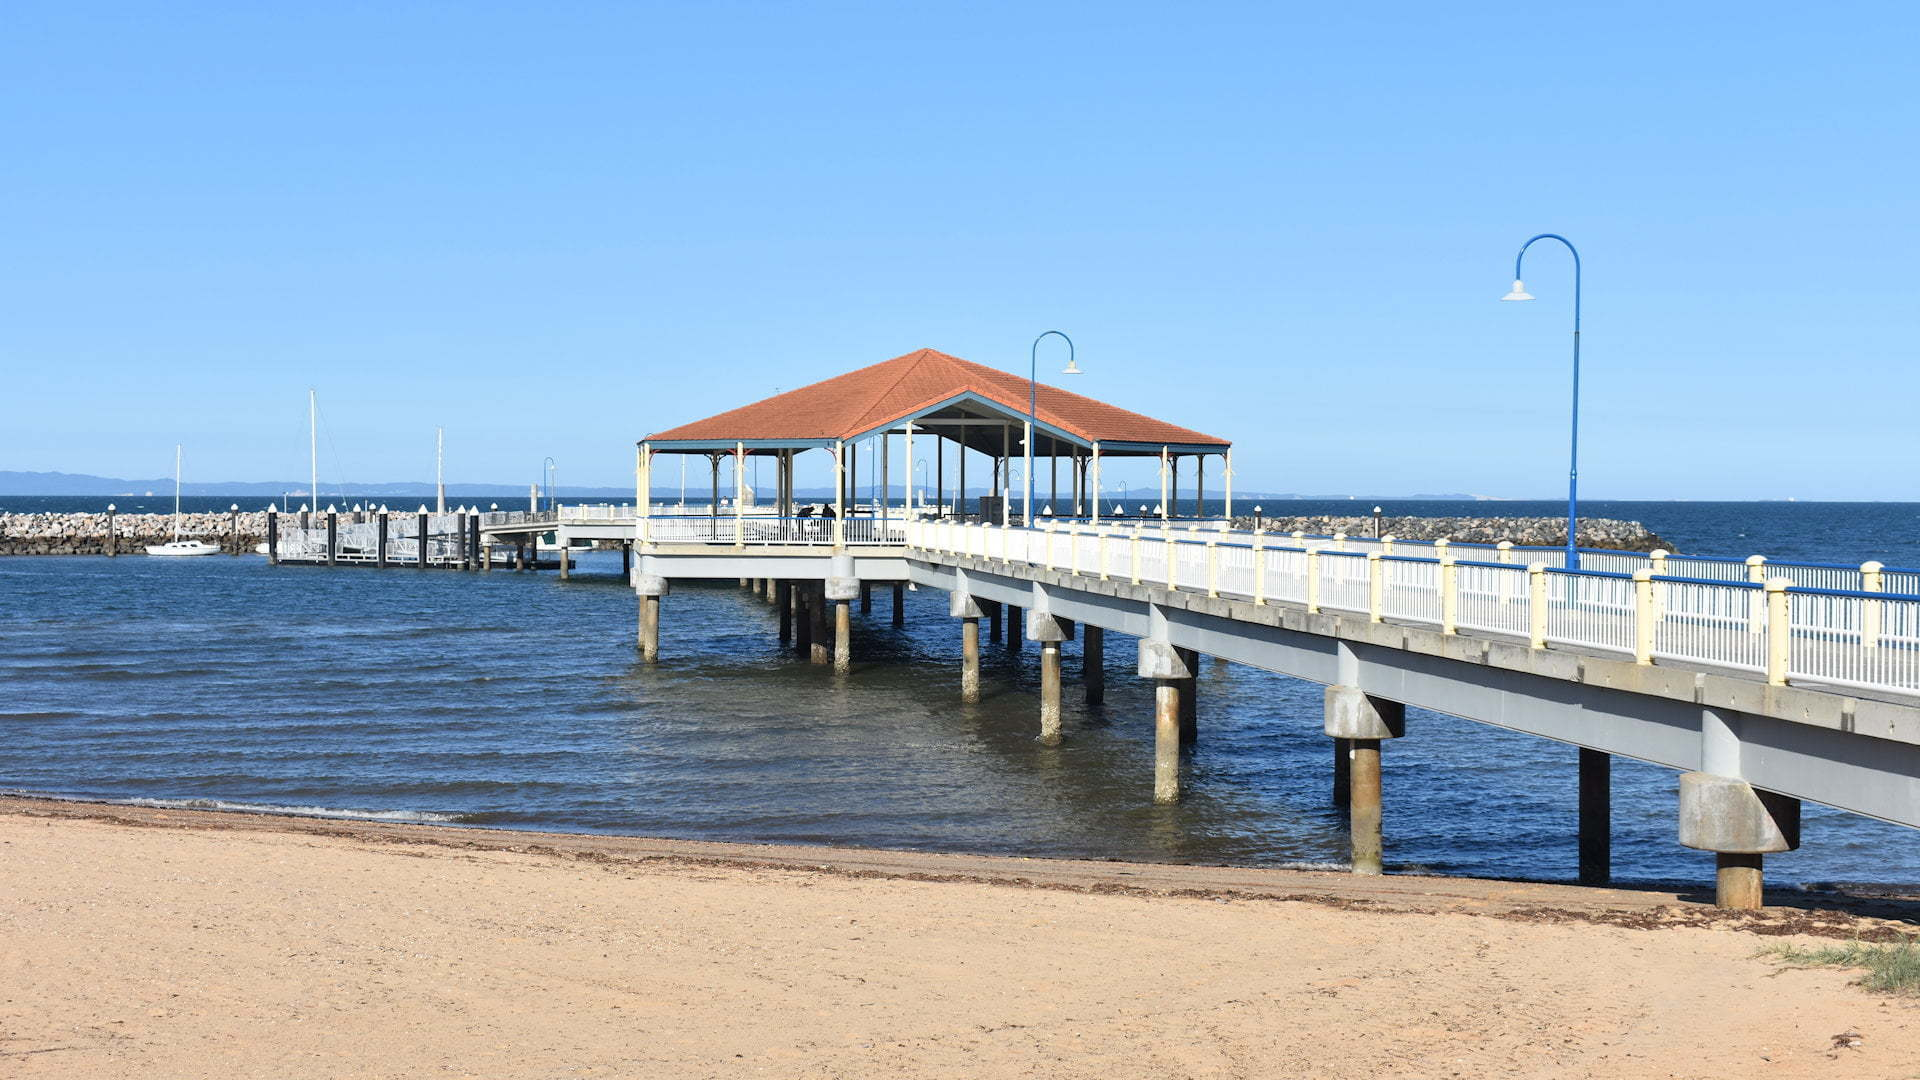 Jetty out from the beach with a rotunda part way along, taken from the sand at Redcliffe Jetty